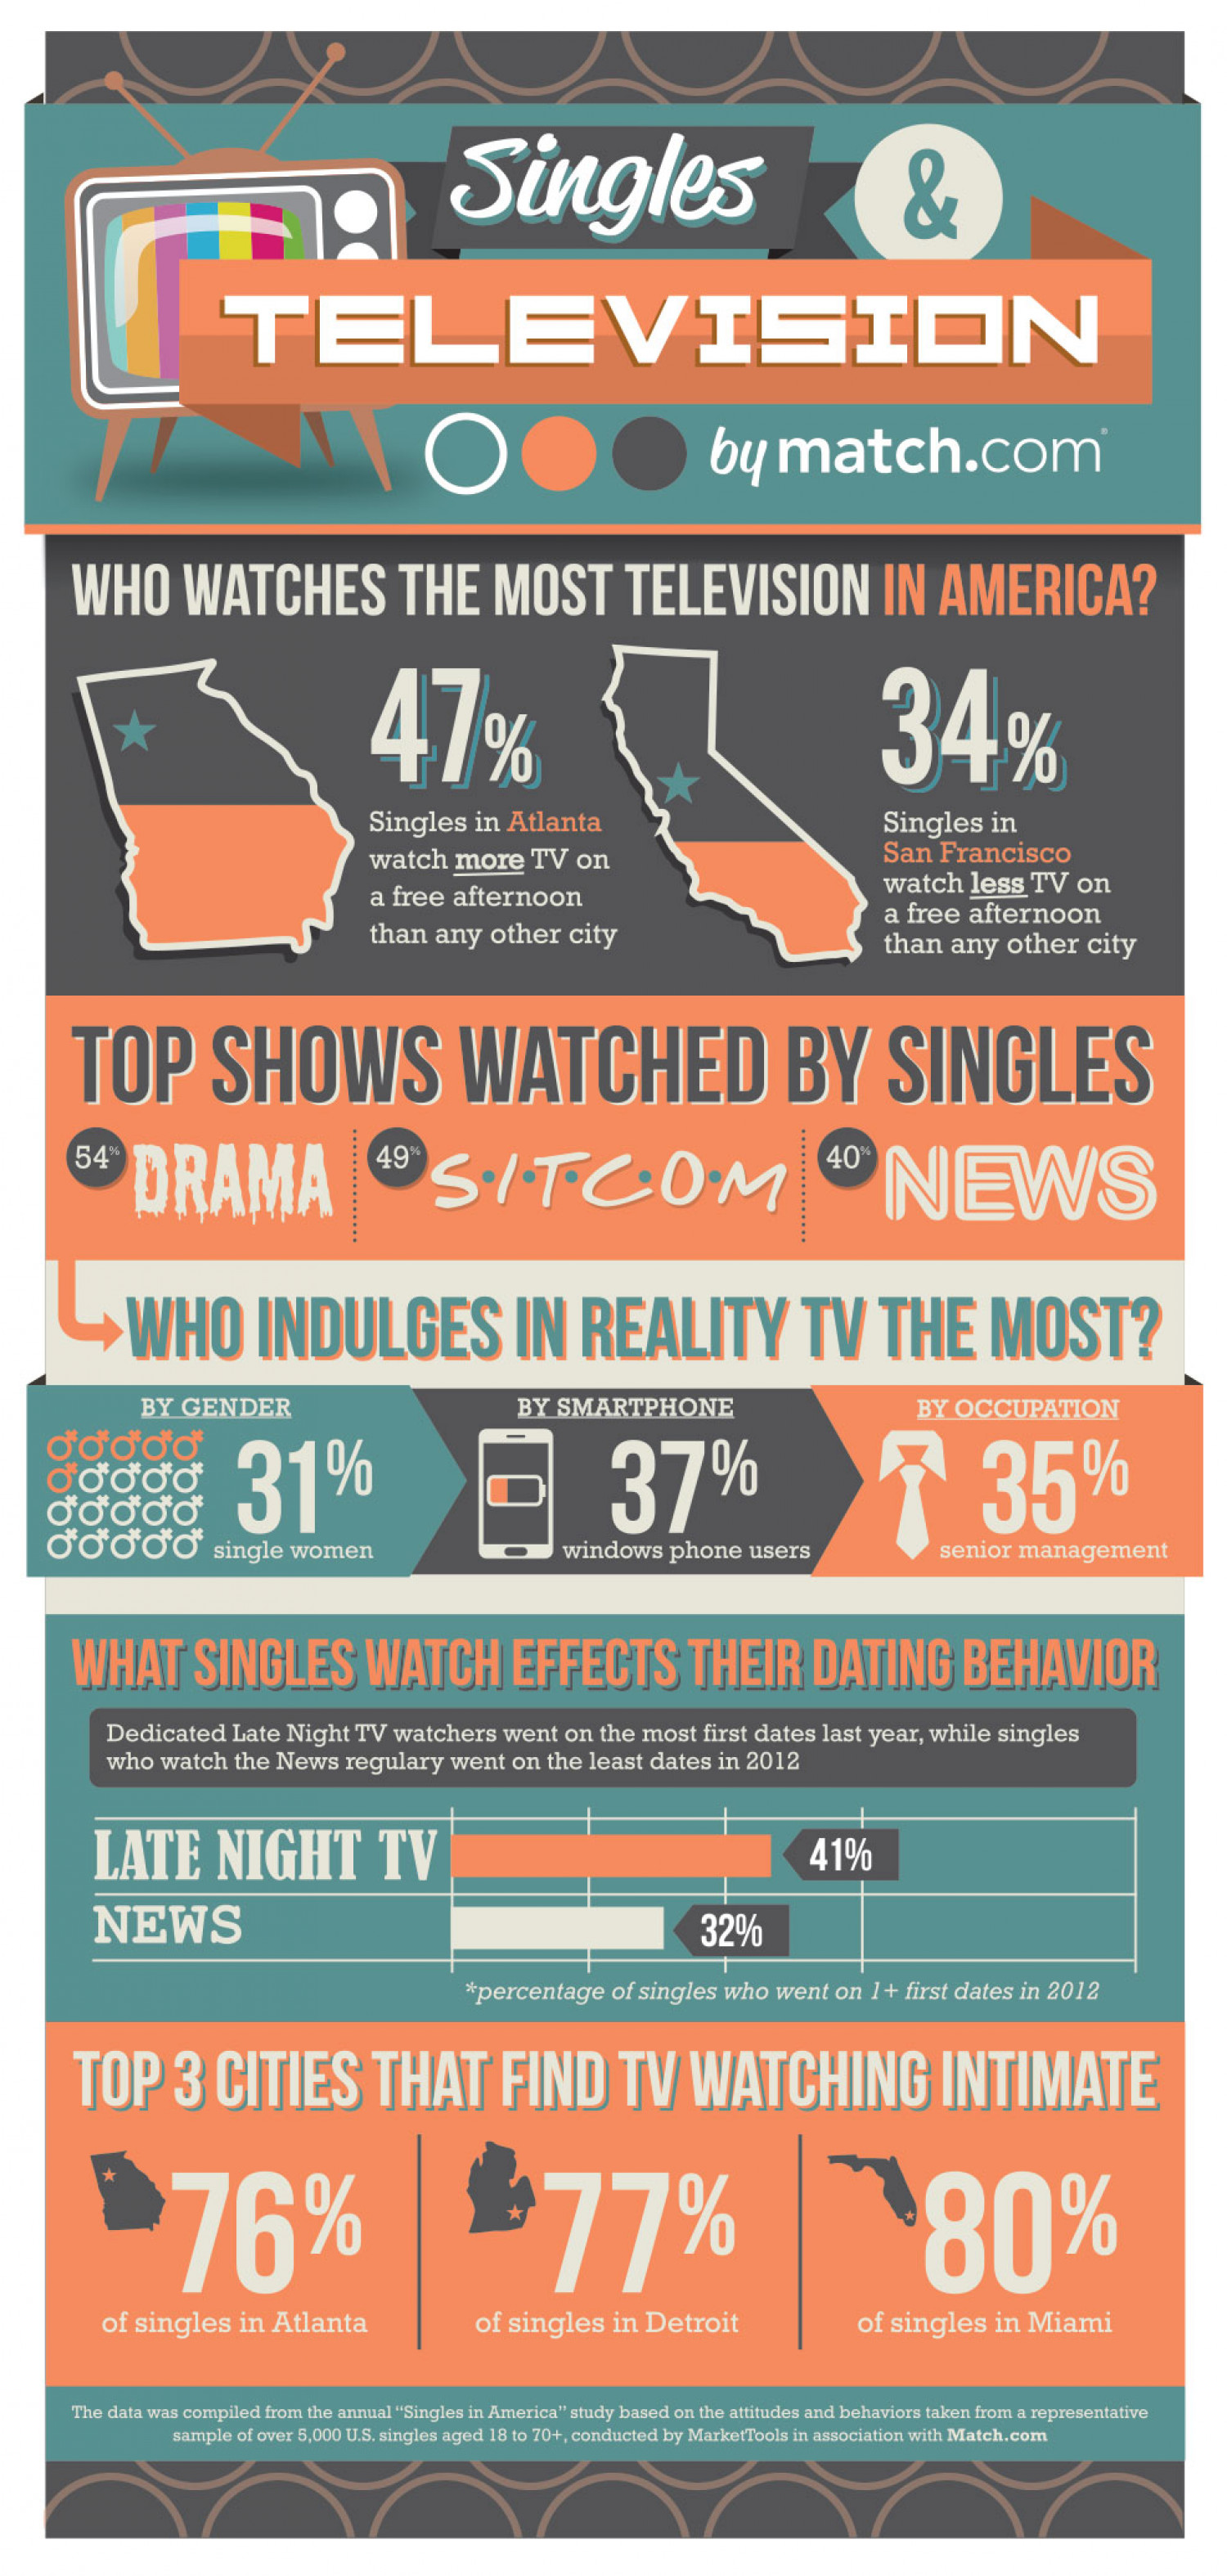 Singles & Television Infographic